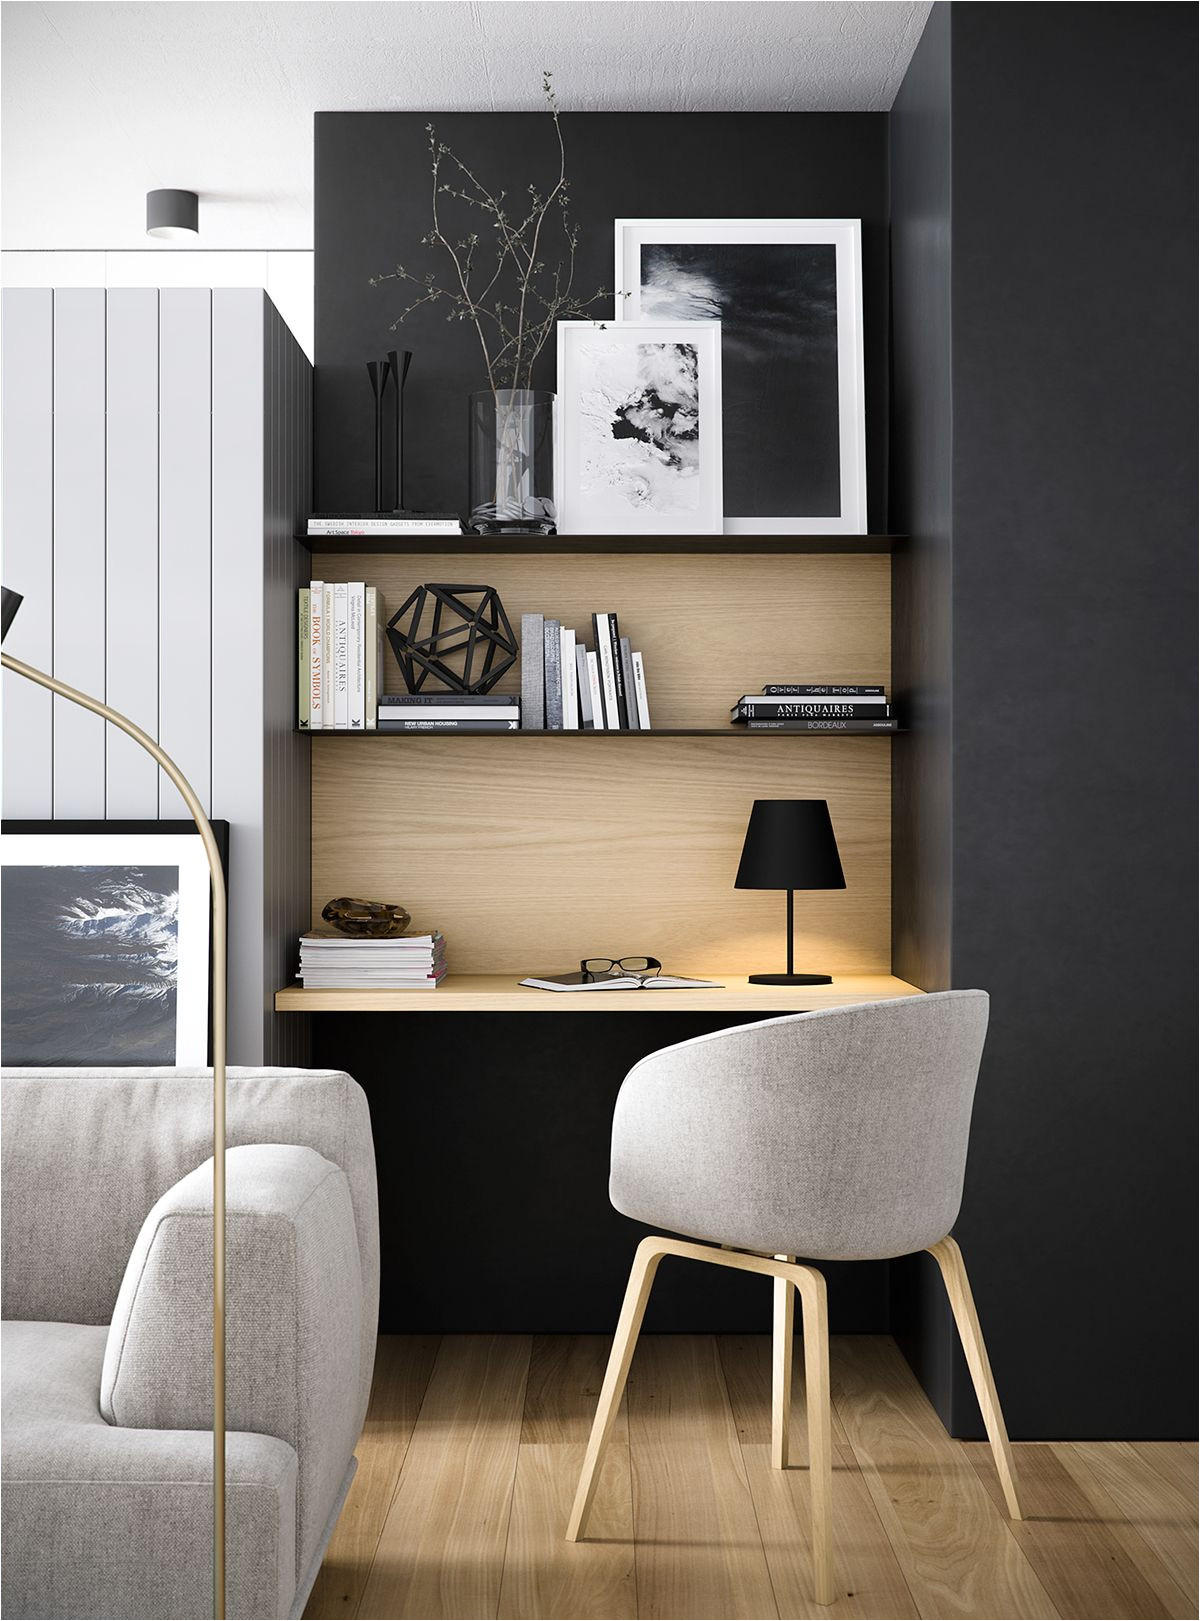 Outlet De Muebles En San Diego Refresh Your Workspace with Ideas From these Inspiring Offices